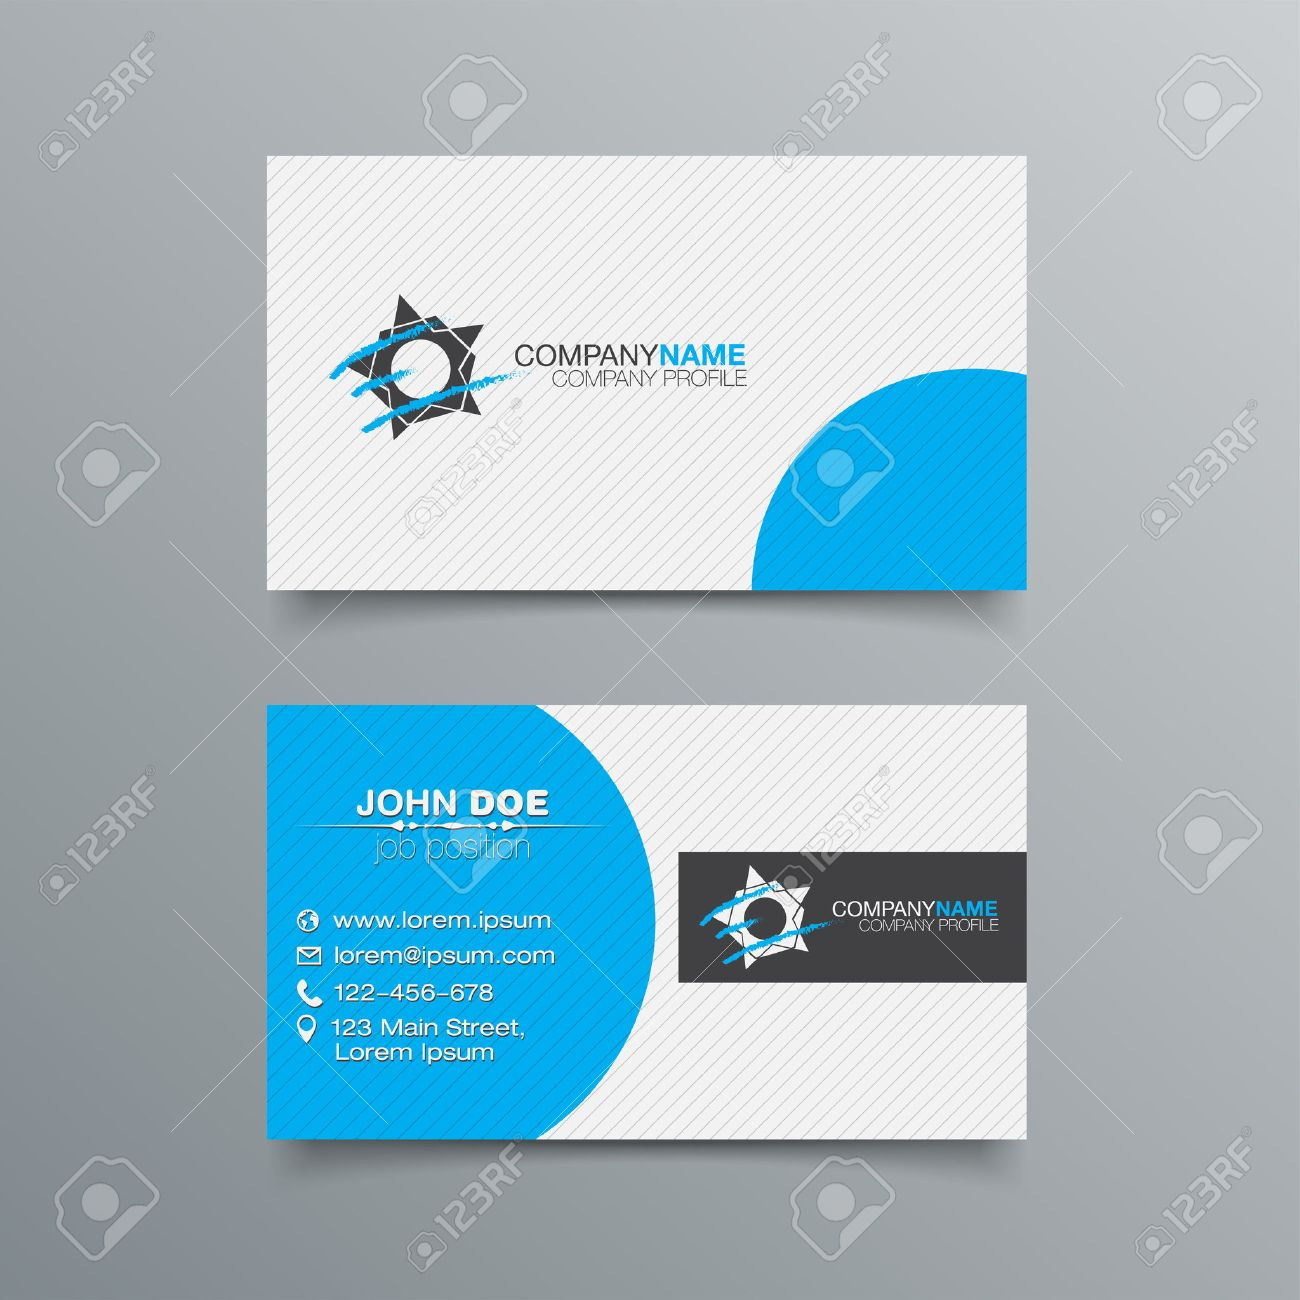 Business card background templates images templates example free blue business card background images free business cards business cards background images free business cards visiting magicingreecefo Images